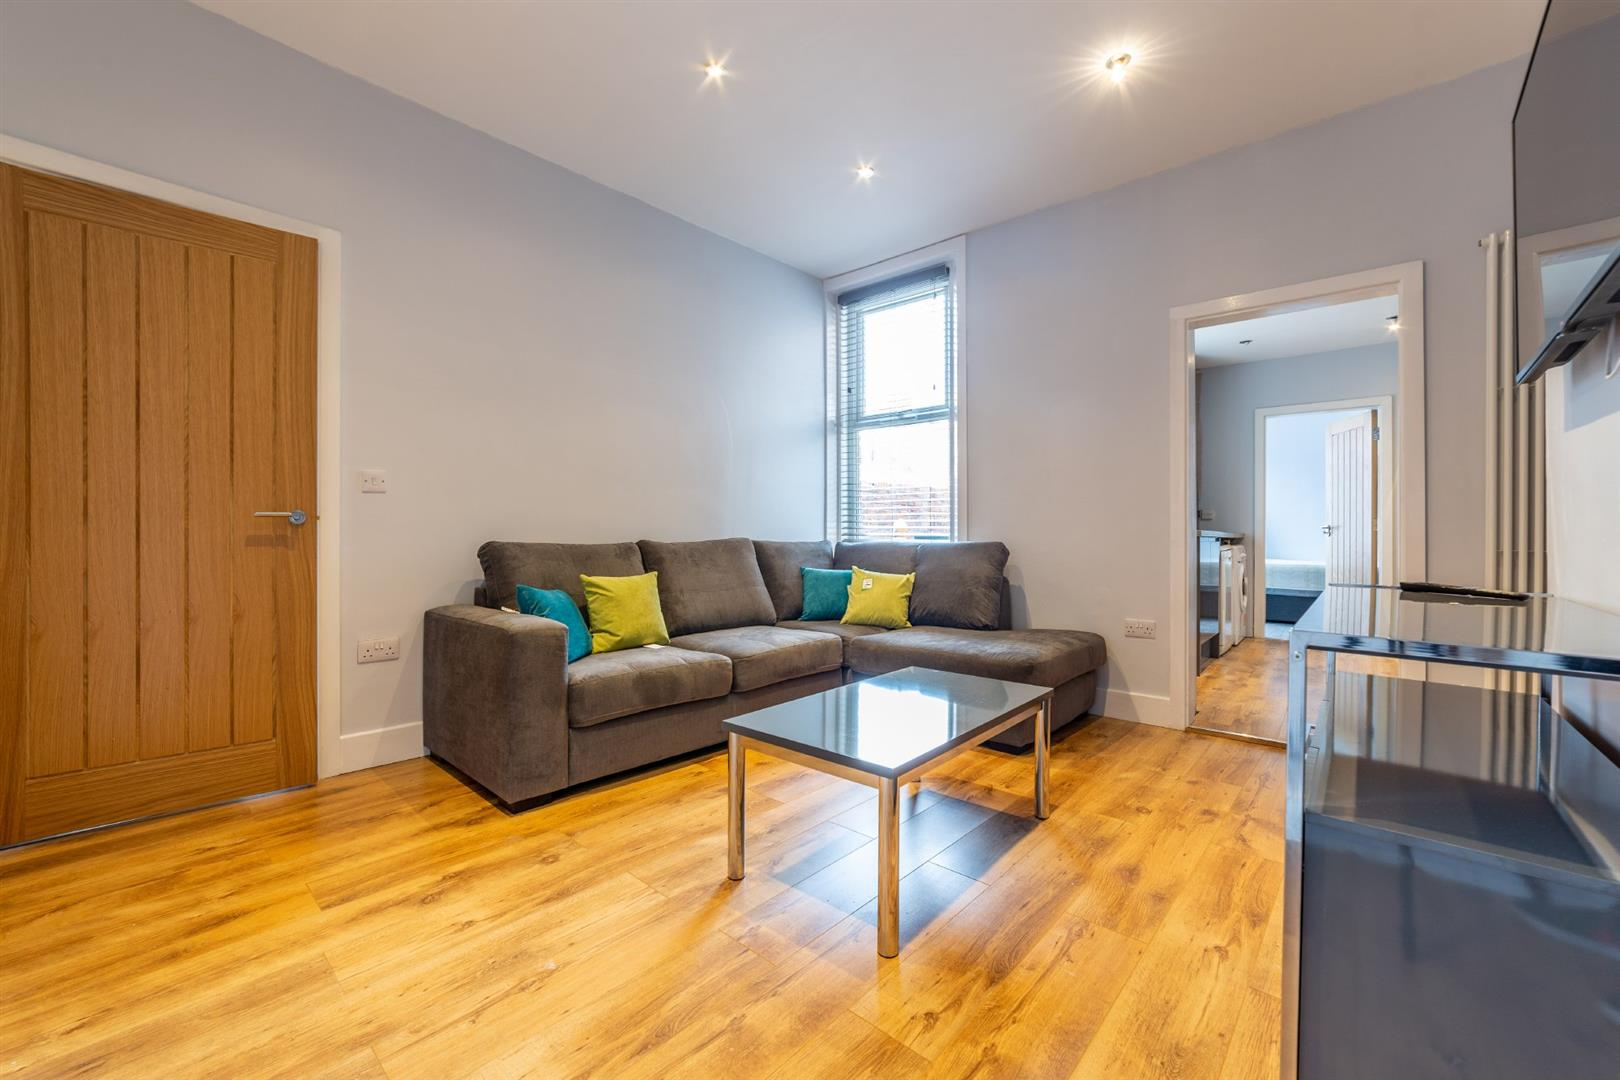 3 bed flat to rent in Jesmond, NE2 3HS, NE2